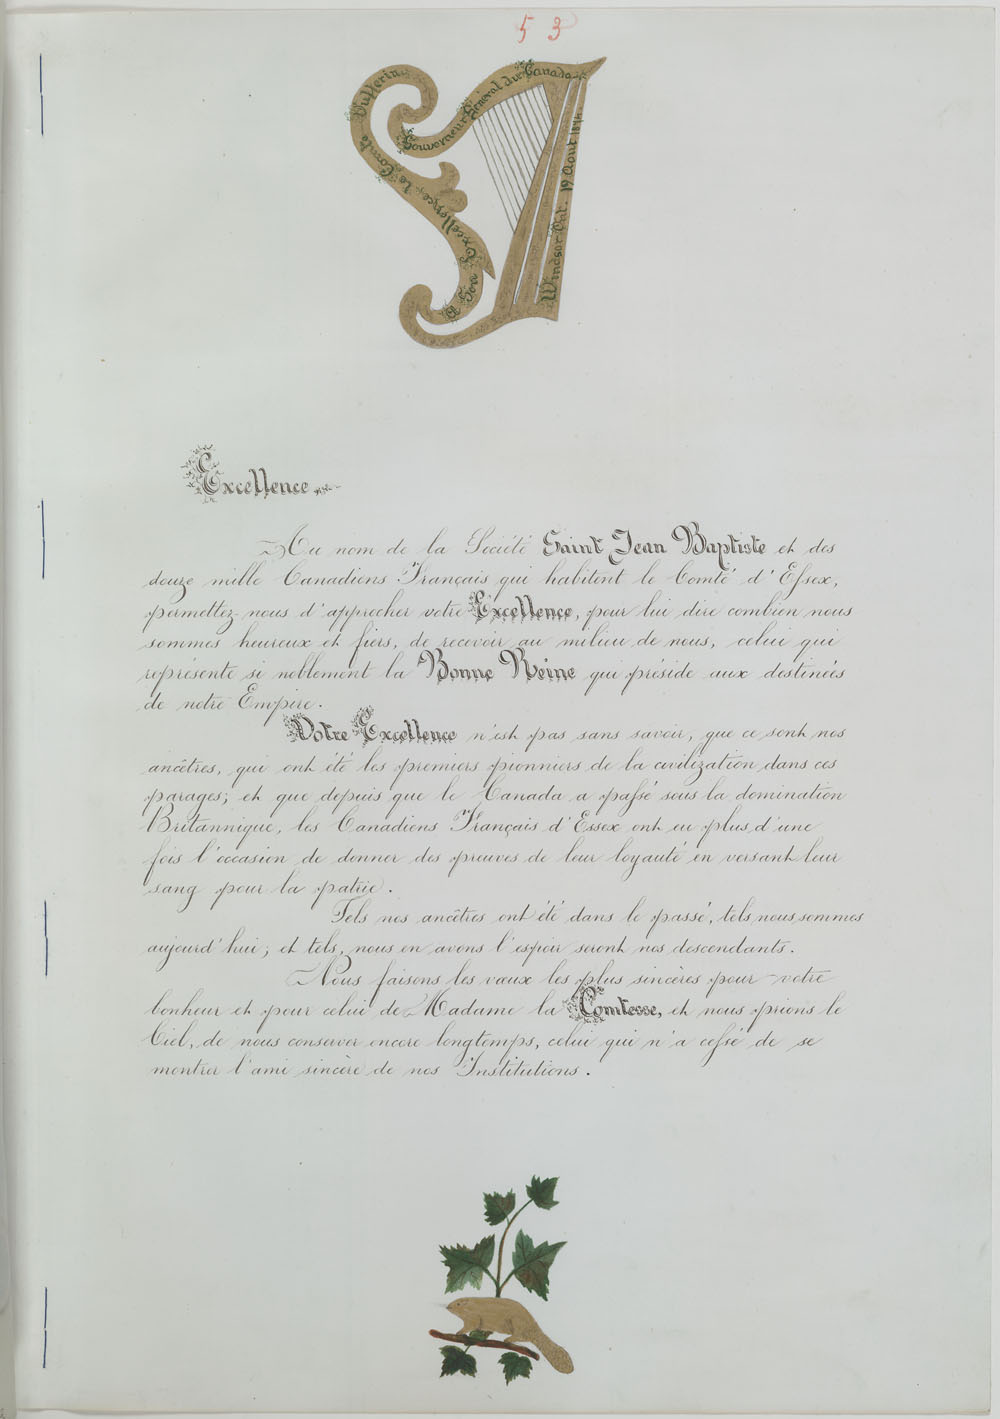 Lettre de La Société St. Jean Baptiste of Essex County, Windsor, à Lord Dufferin